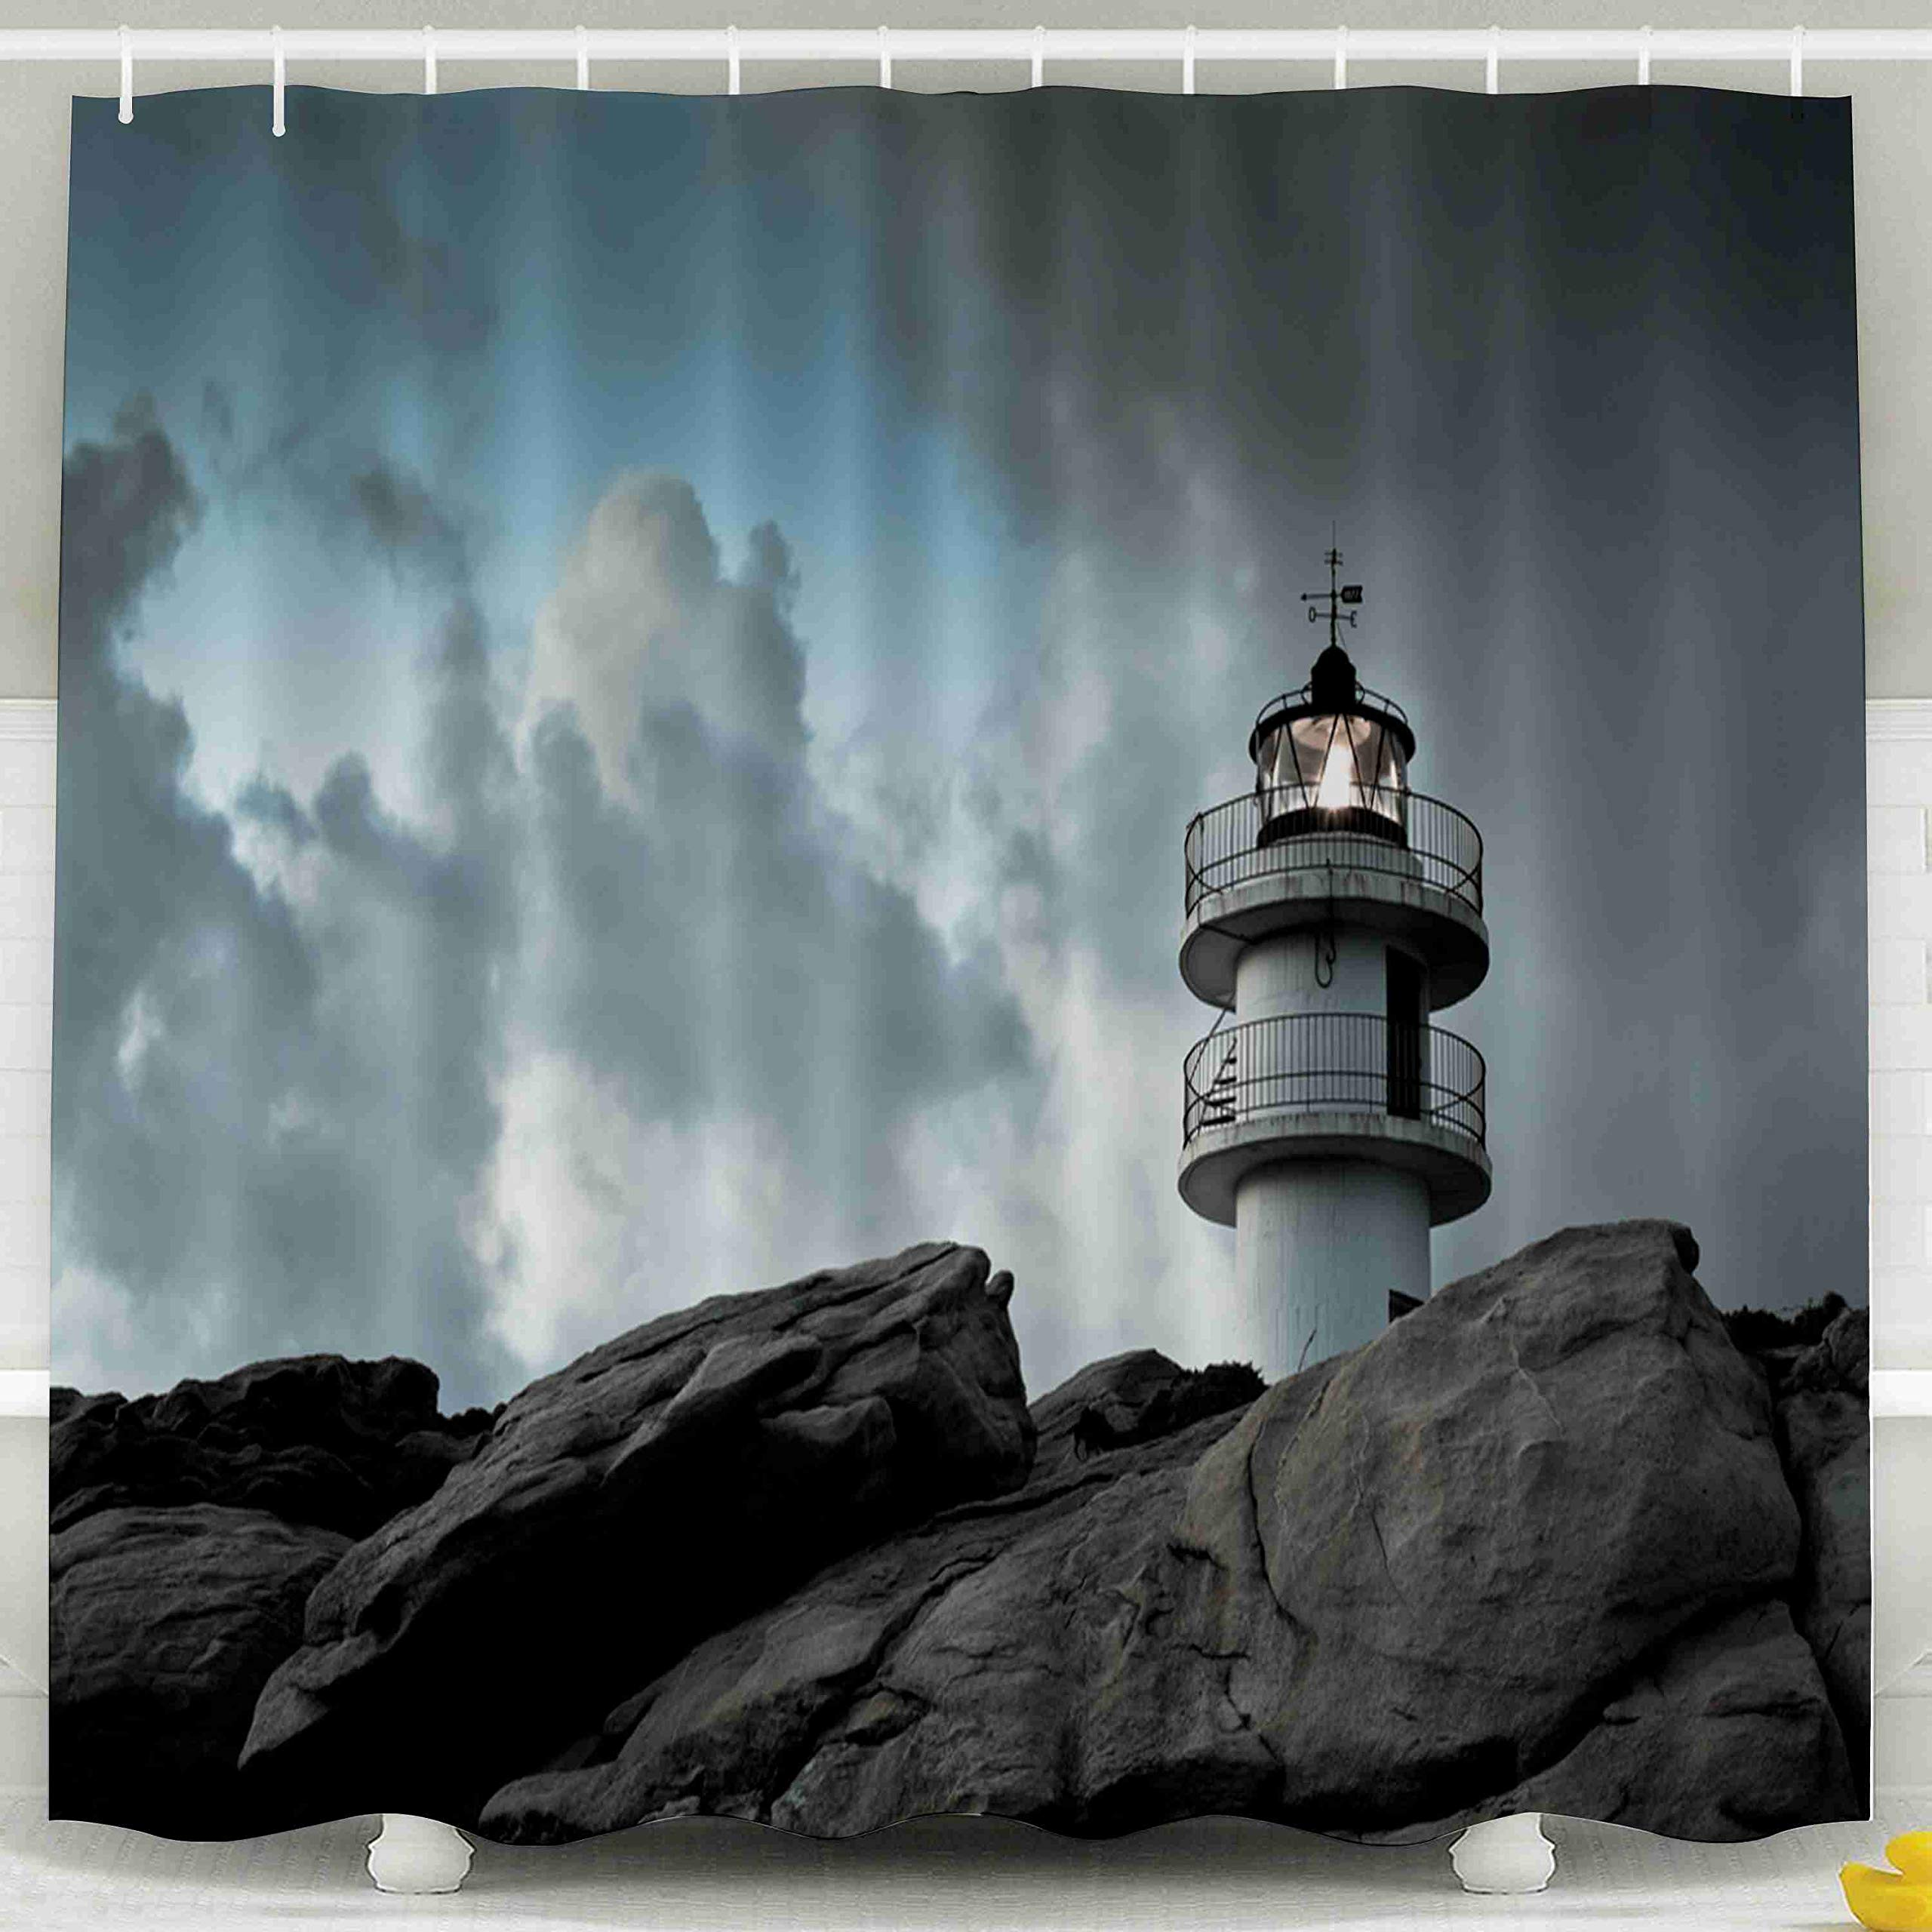 Jacrane Waterproof Fabric Bathroom Clear Shower Curtains Liner with Hooks Working Lighthouse Northern Spain in Bad Weather Horizontal Shot 72X72Inch,Pink Green